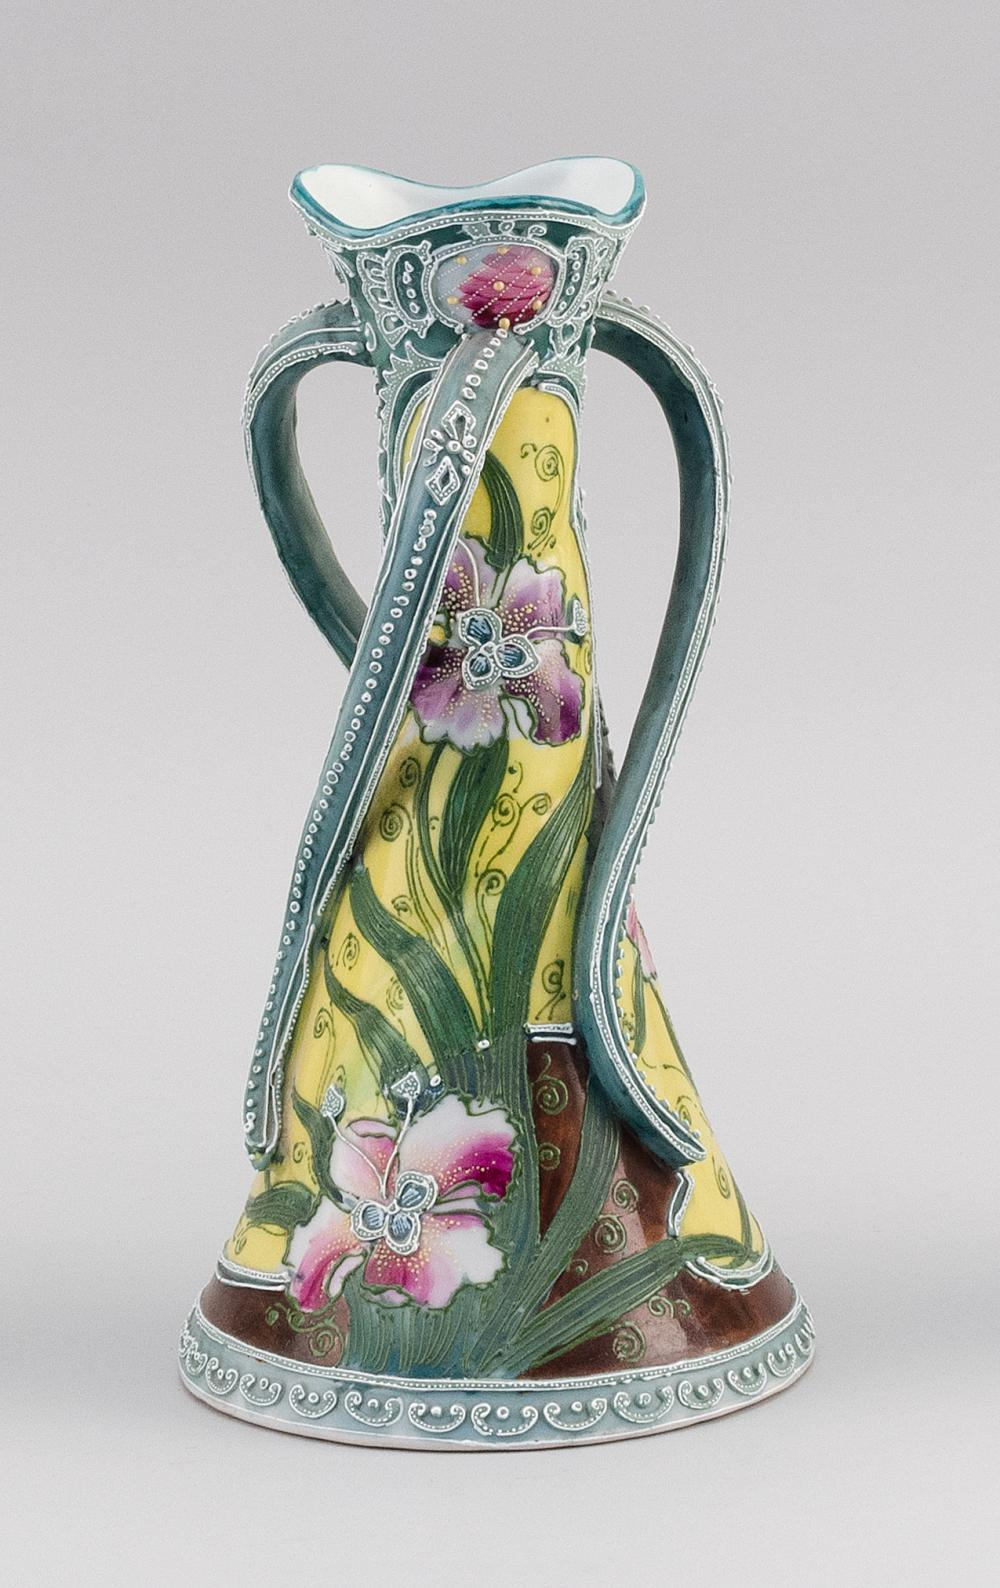 MORIAGE NIPPON PORCELAIN VASE Conical, with three twisting handles and floral decoration. Height 10